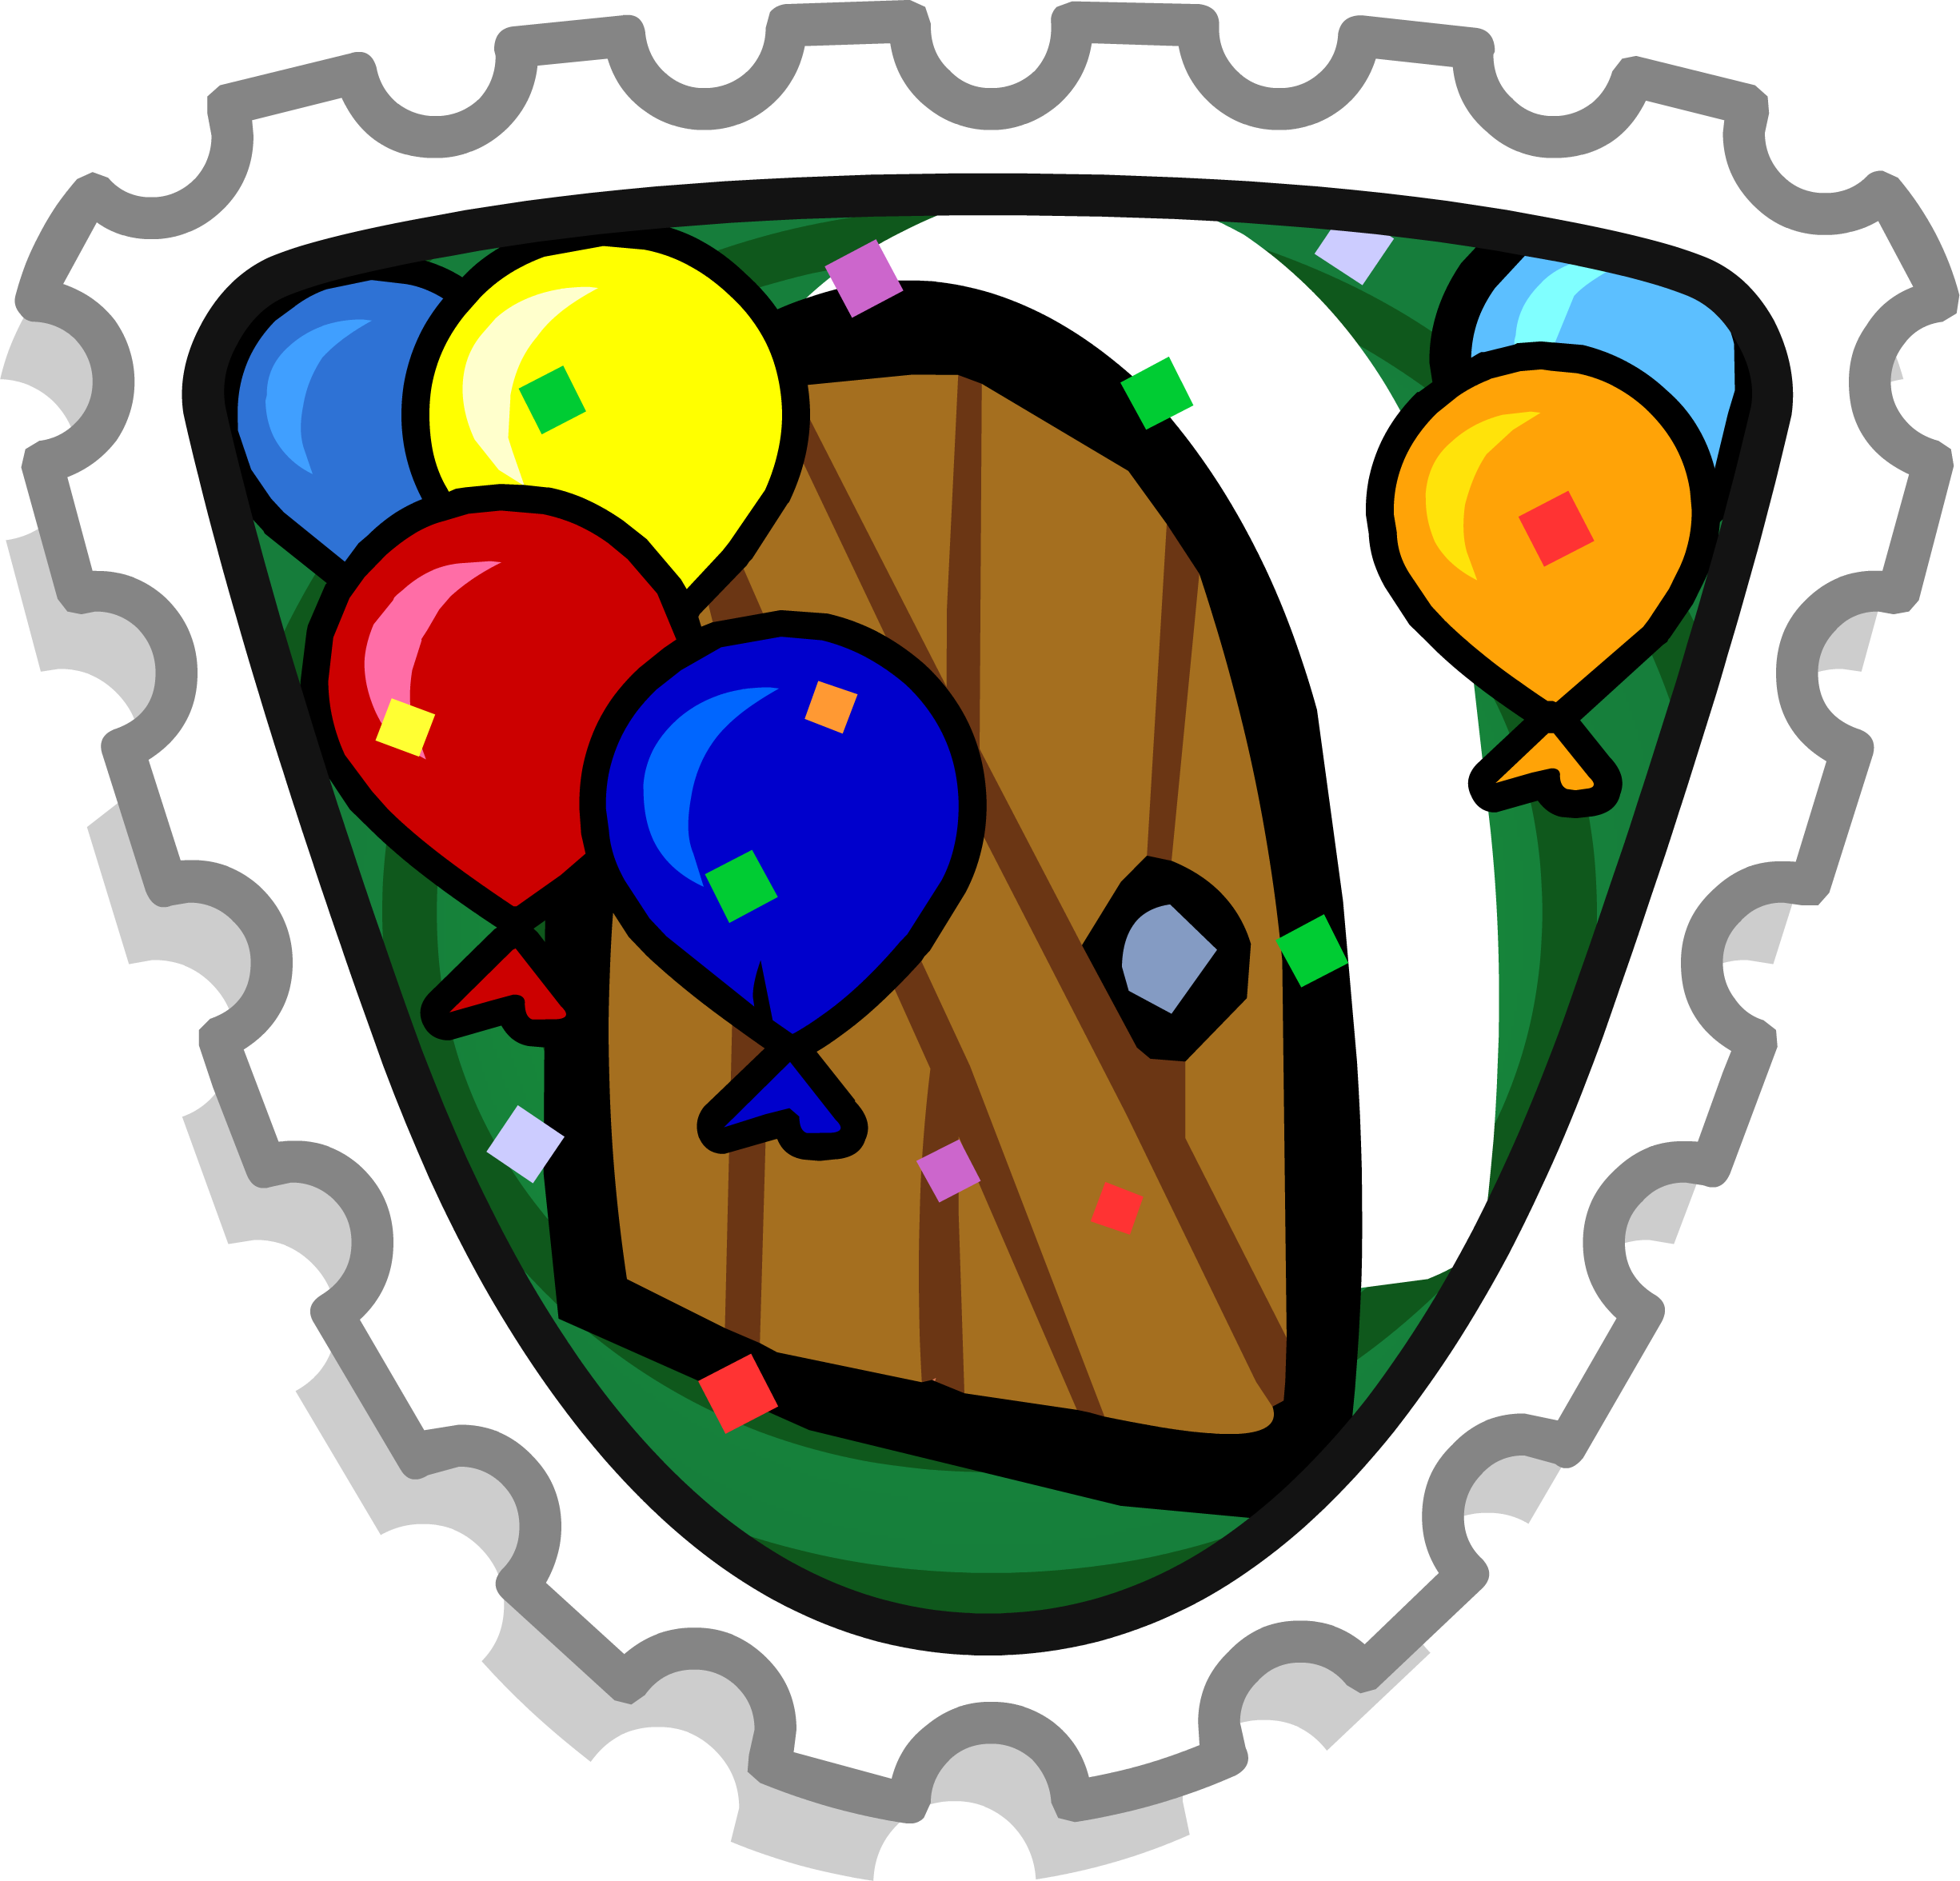 Missions clipart official stamp. Explorer club penguin wiki